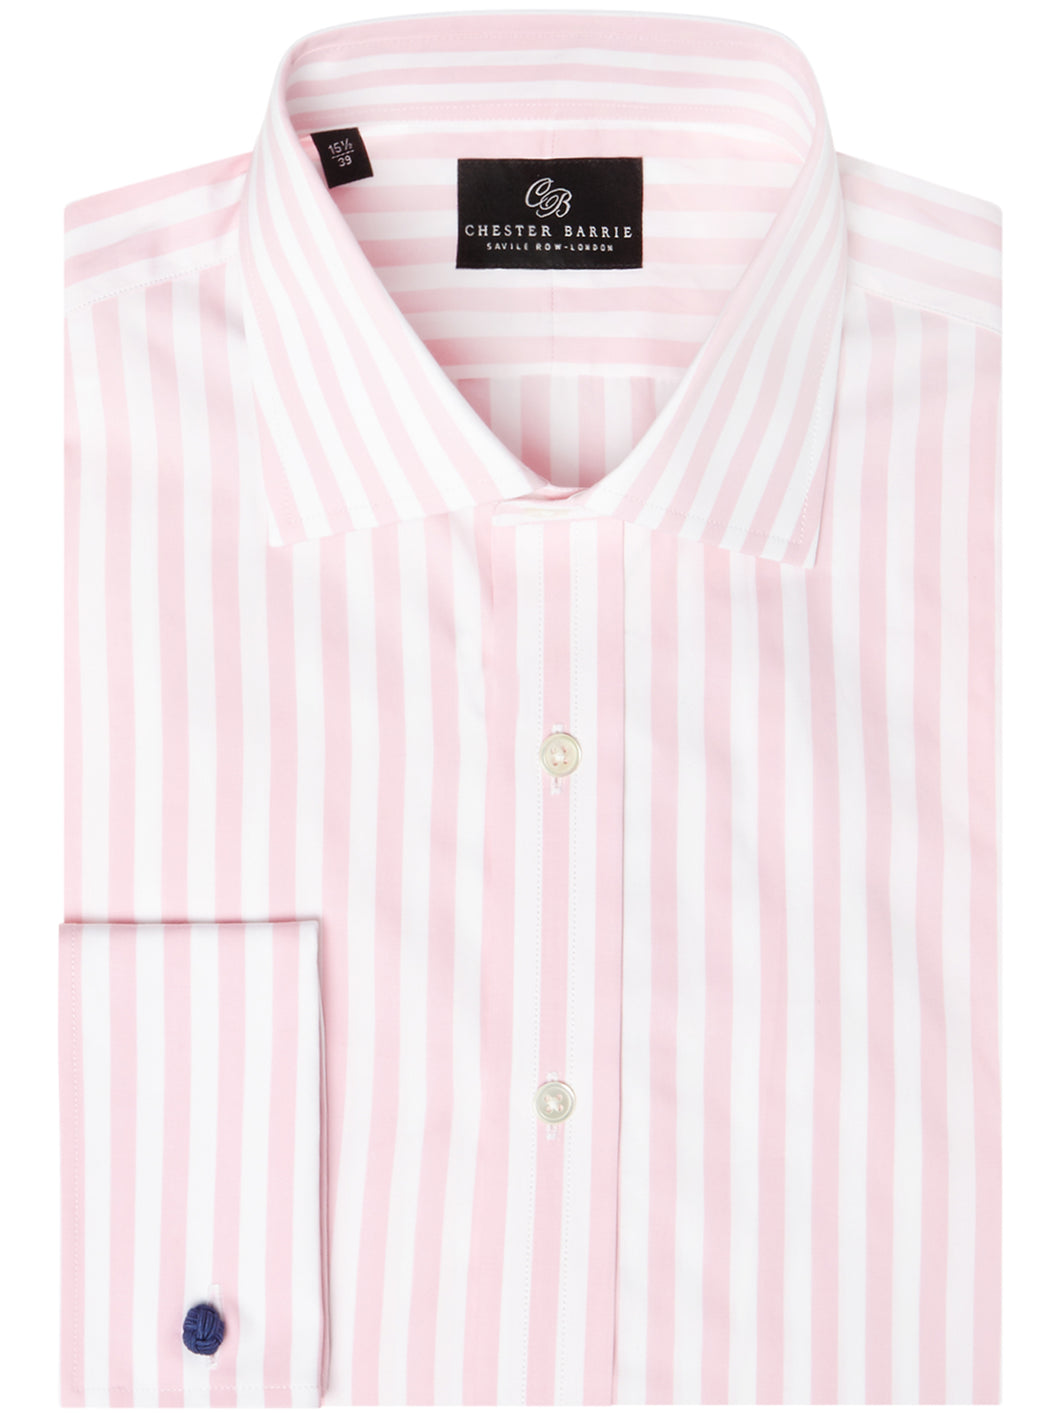 Chester Barrie, Candy stripe shirt, Pink